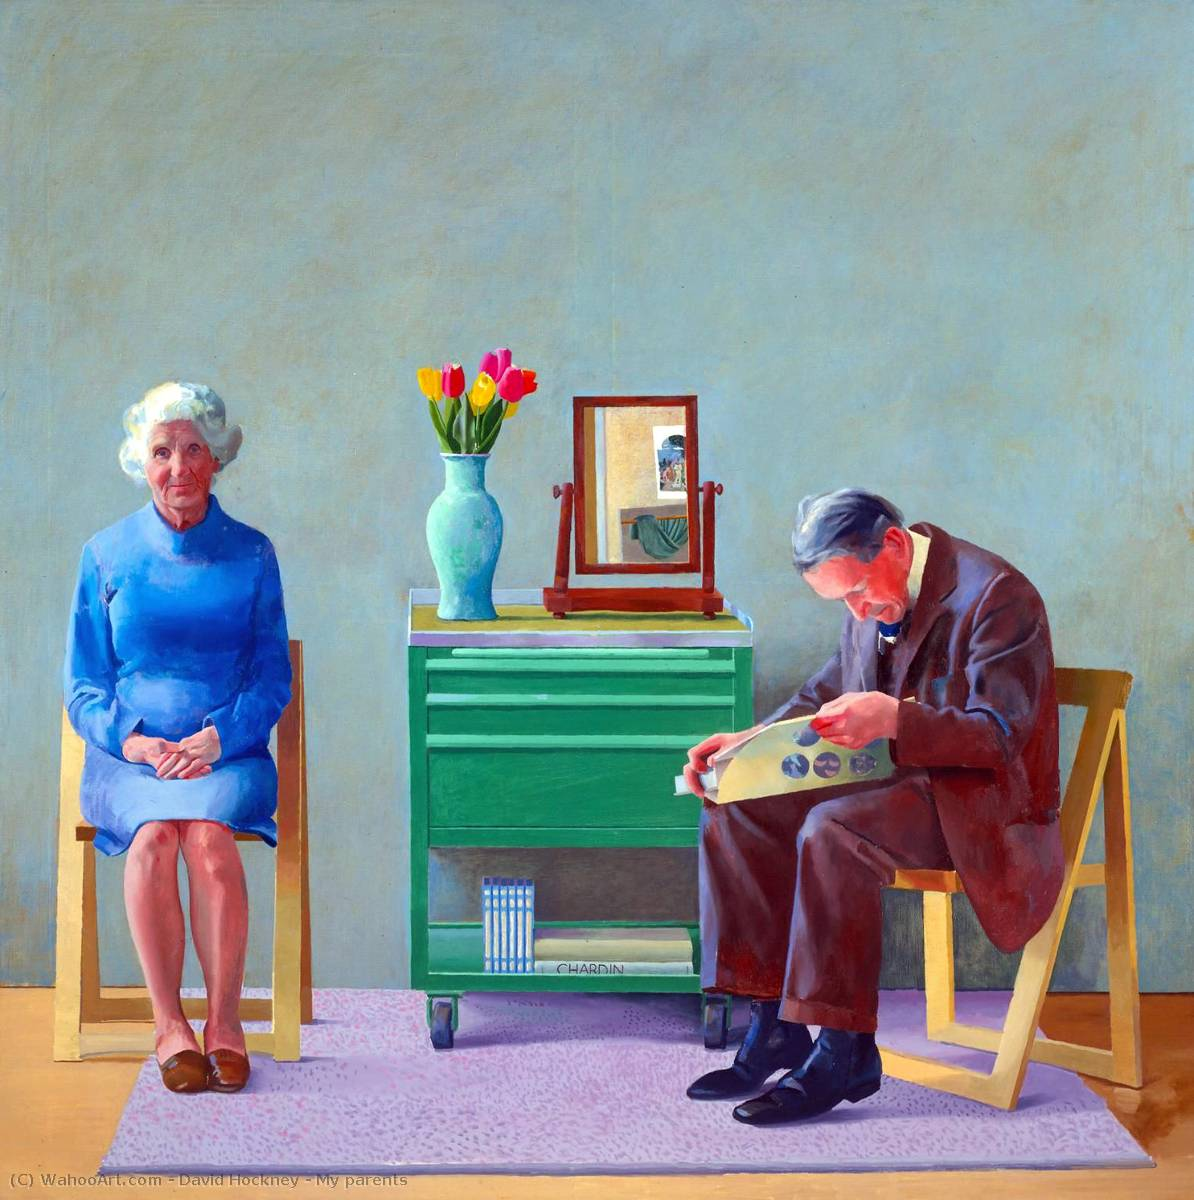 famous painting mis padres of David Hockney